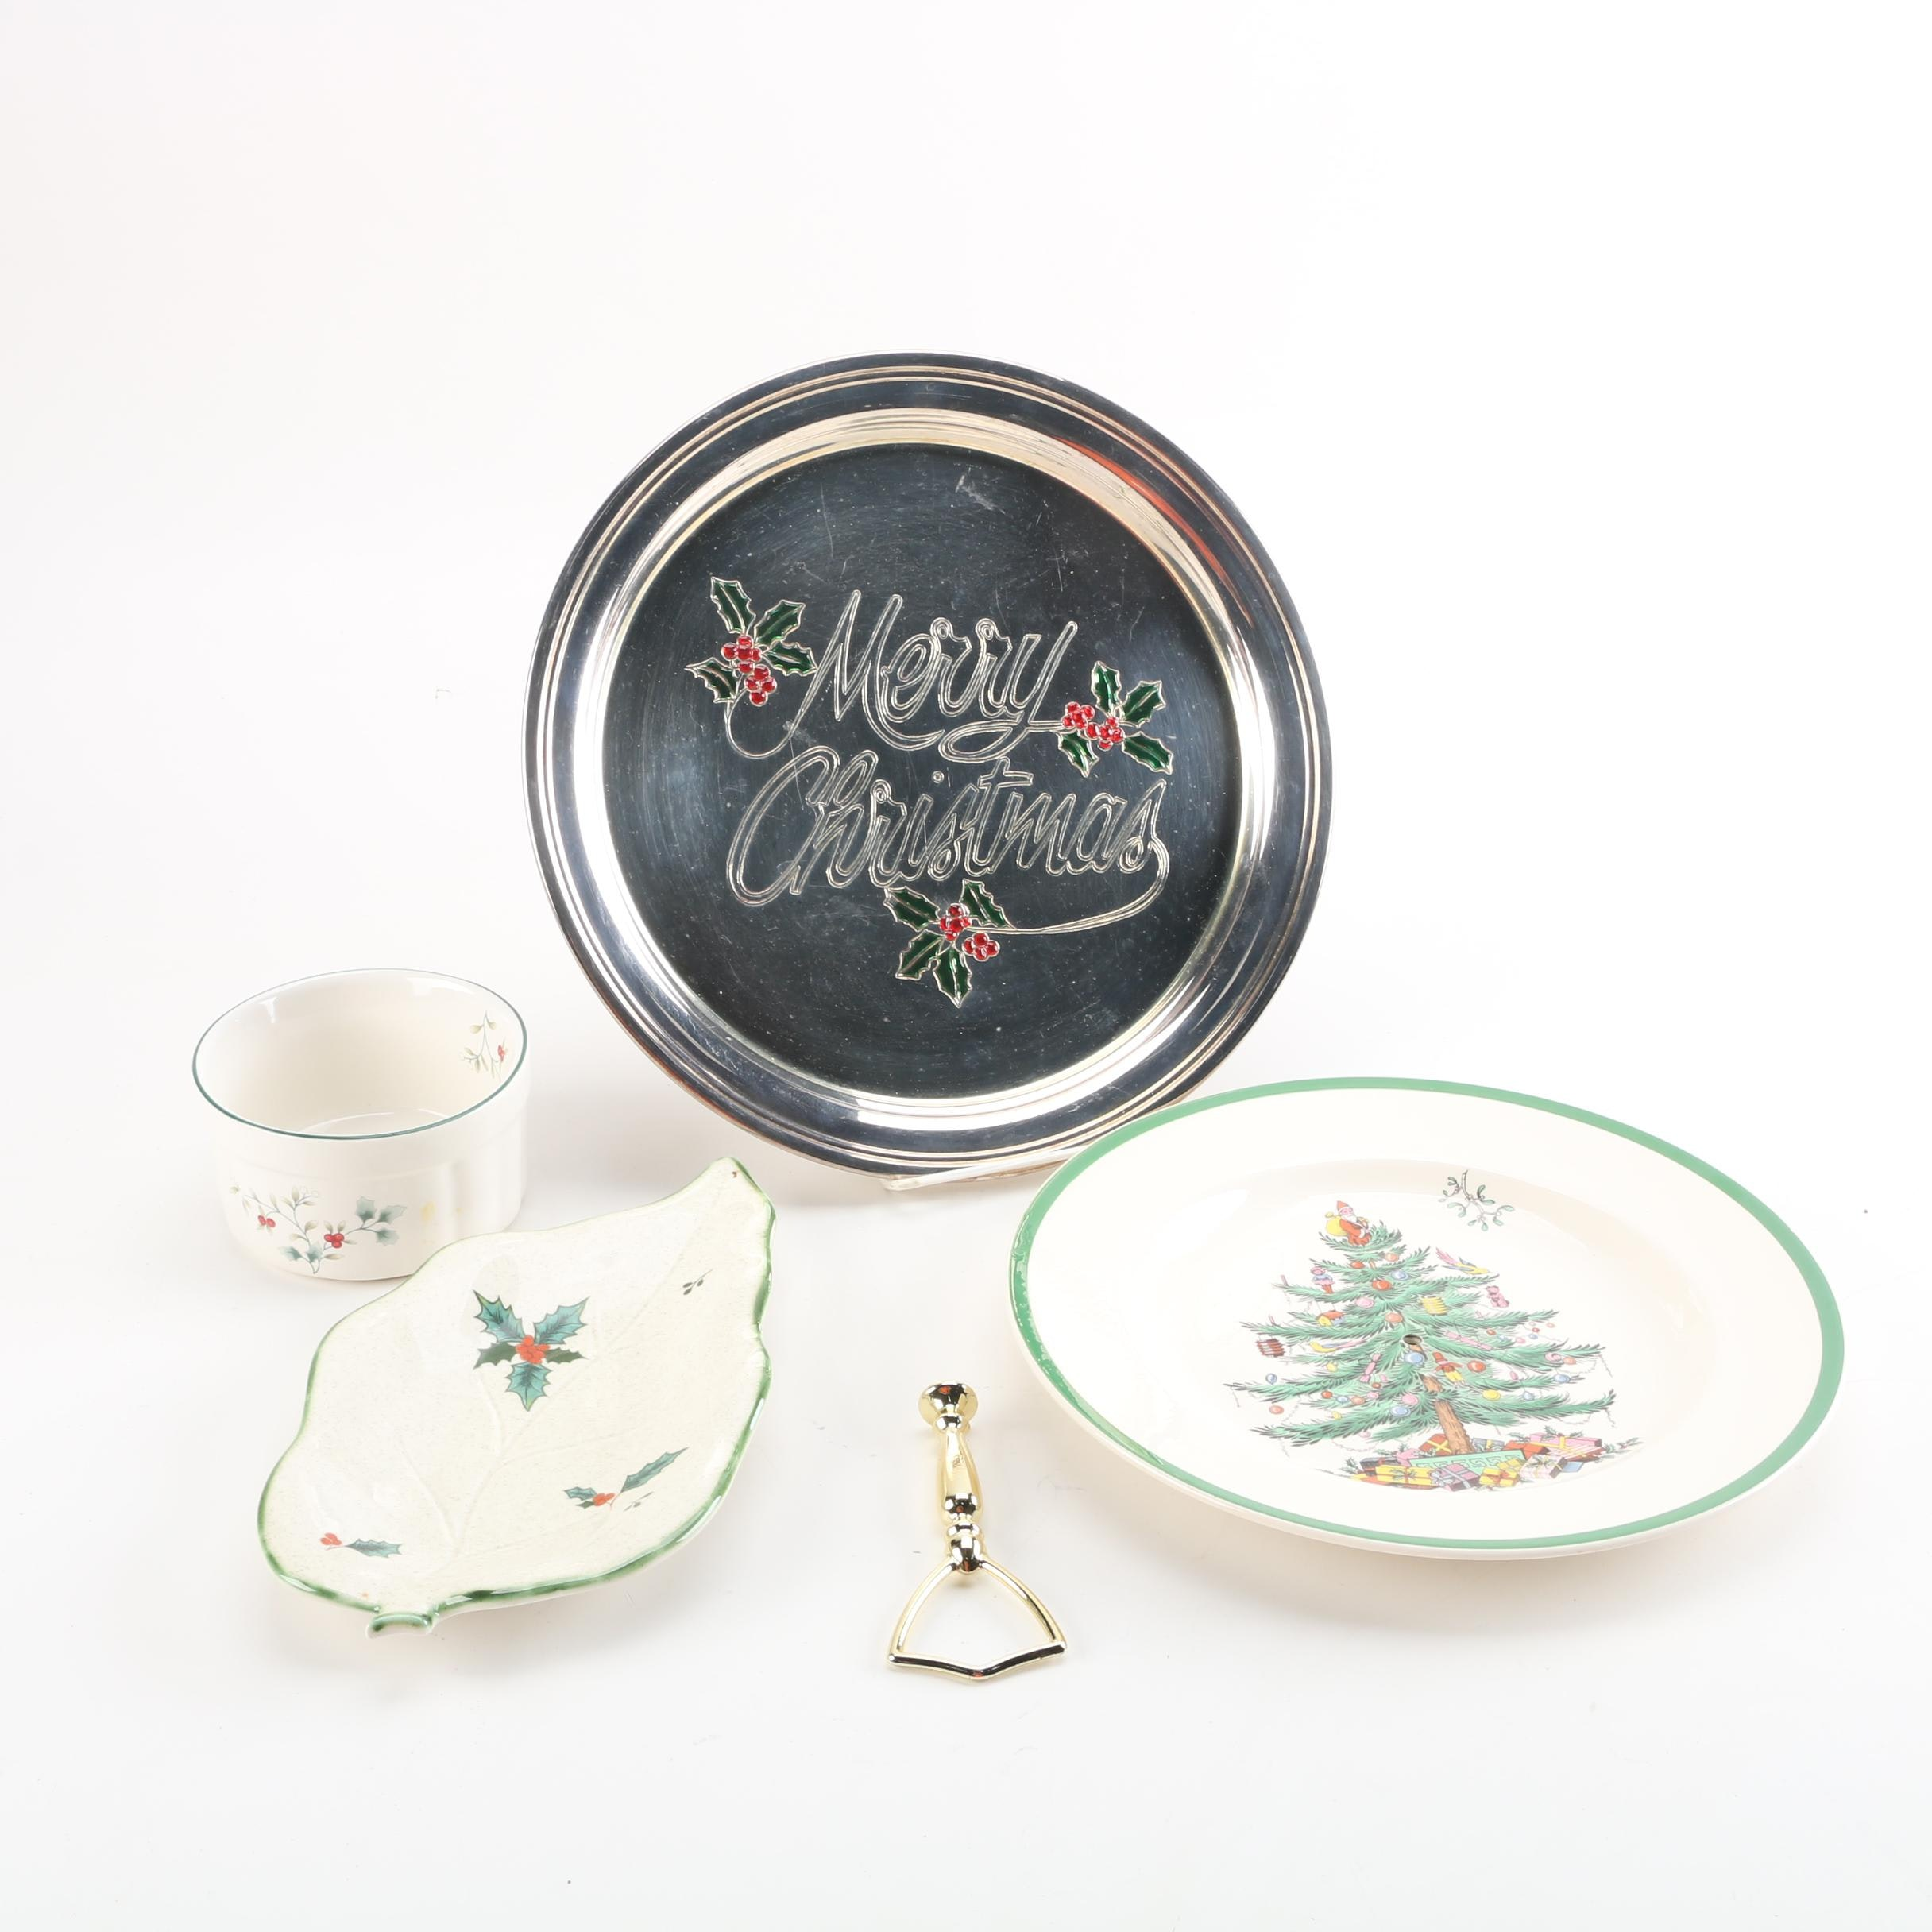 Holiday Themed China and Metal Serveware Featuring Spode and Pfaltzgraff